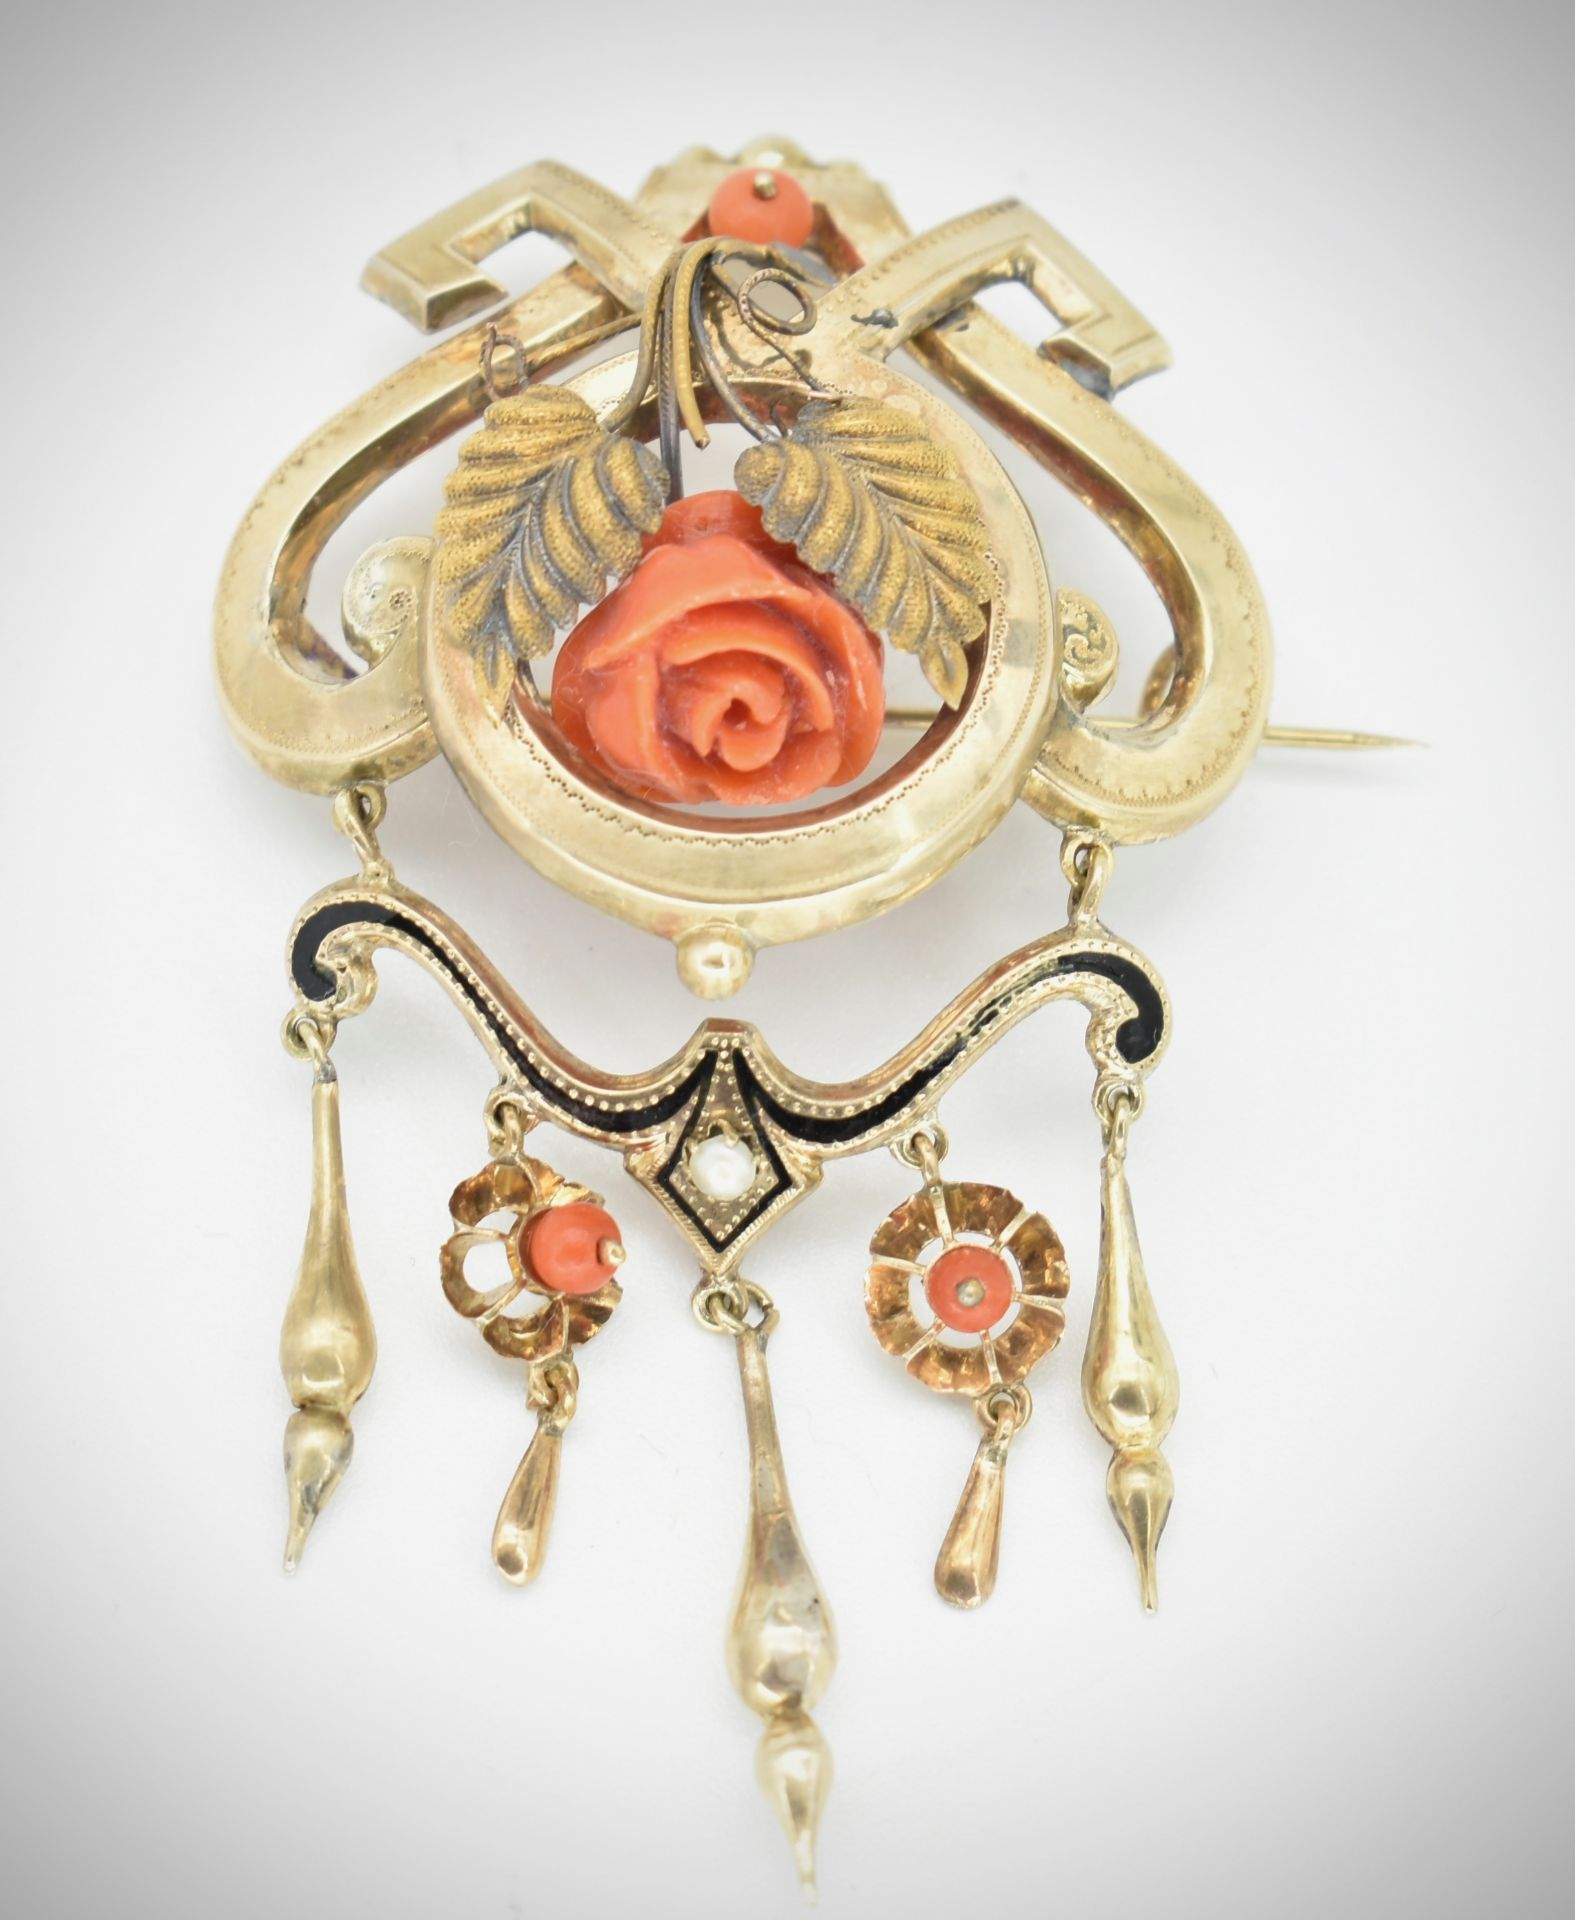 19th Century Victorian Gold & Coral Earring & Brooch Parure - Image 5 of 7